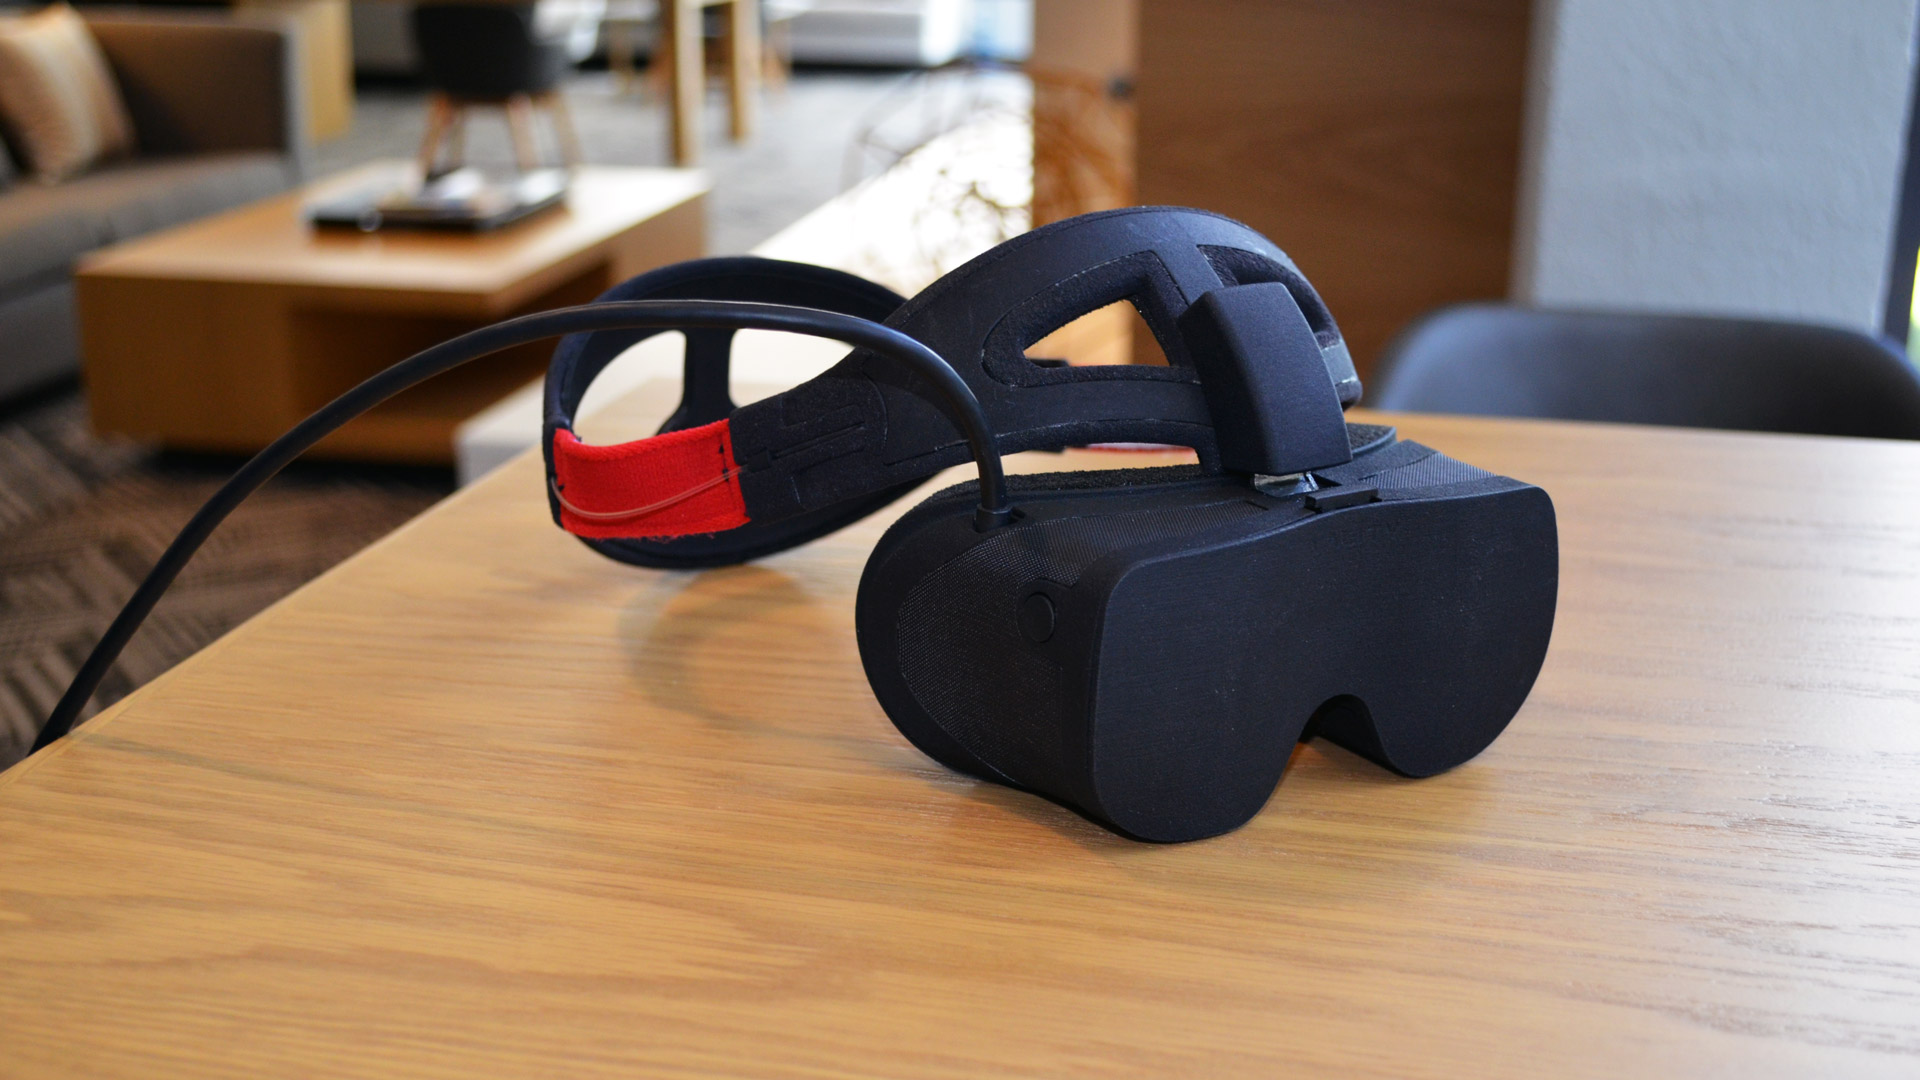 Exclusive: Vality is Building a Compact VR Headset with Ultra-high Resolution